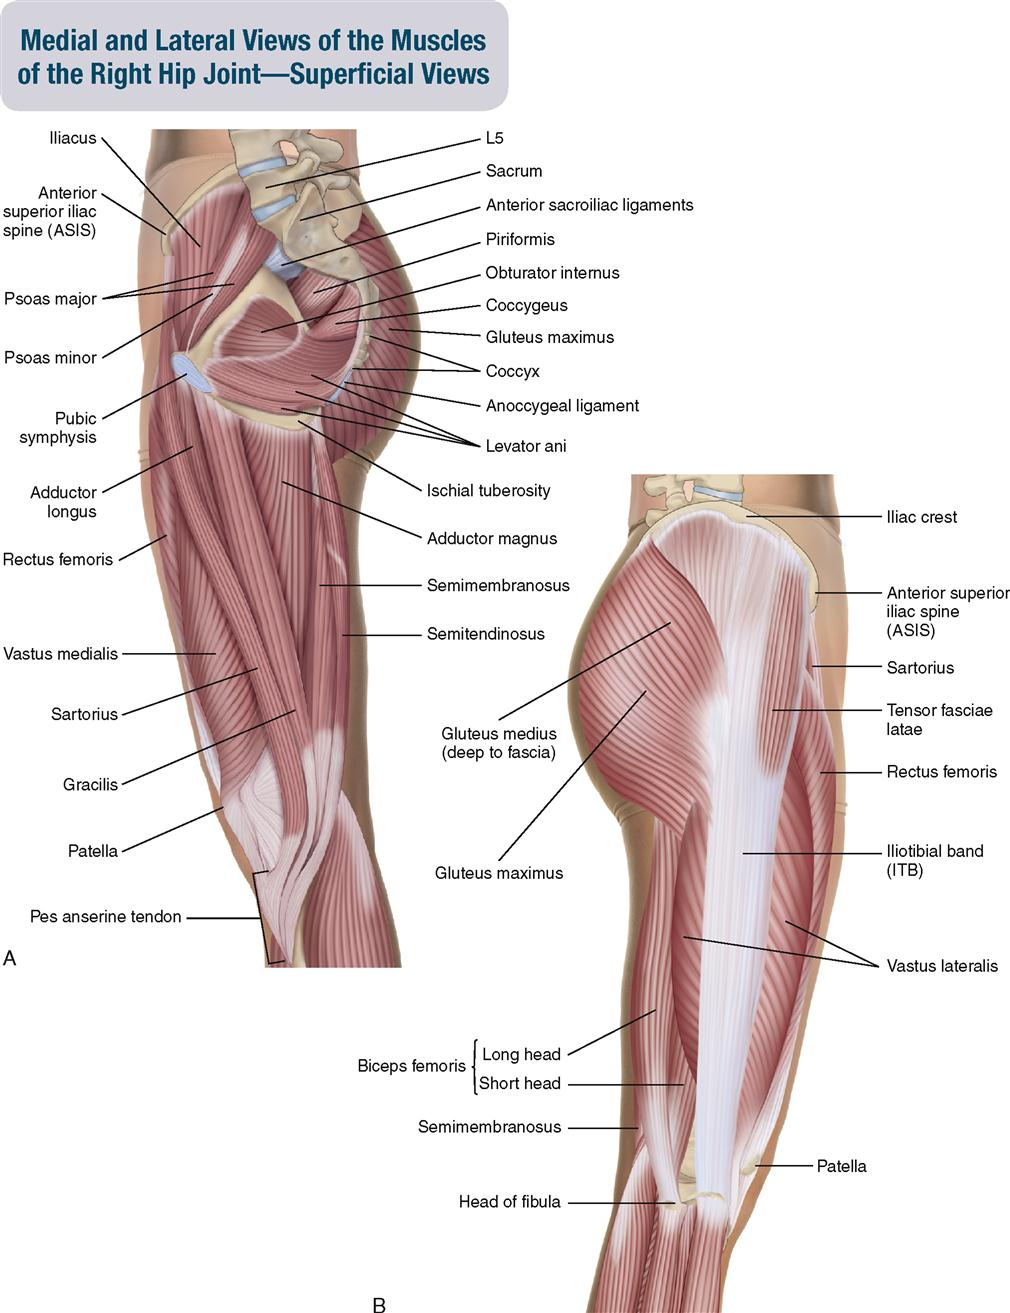 hight resolution of figure 10 3 a medial view of the muscles of the right hip joint superficial b lateral view of the muscles of the right hip joint superficial